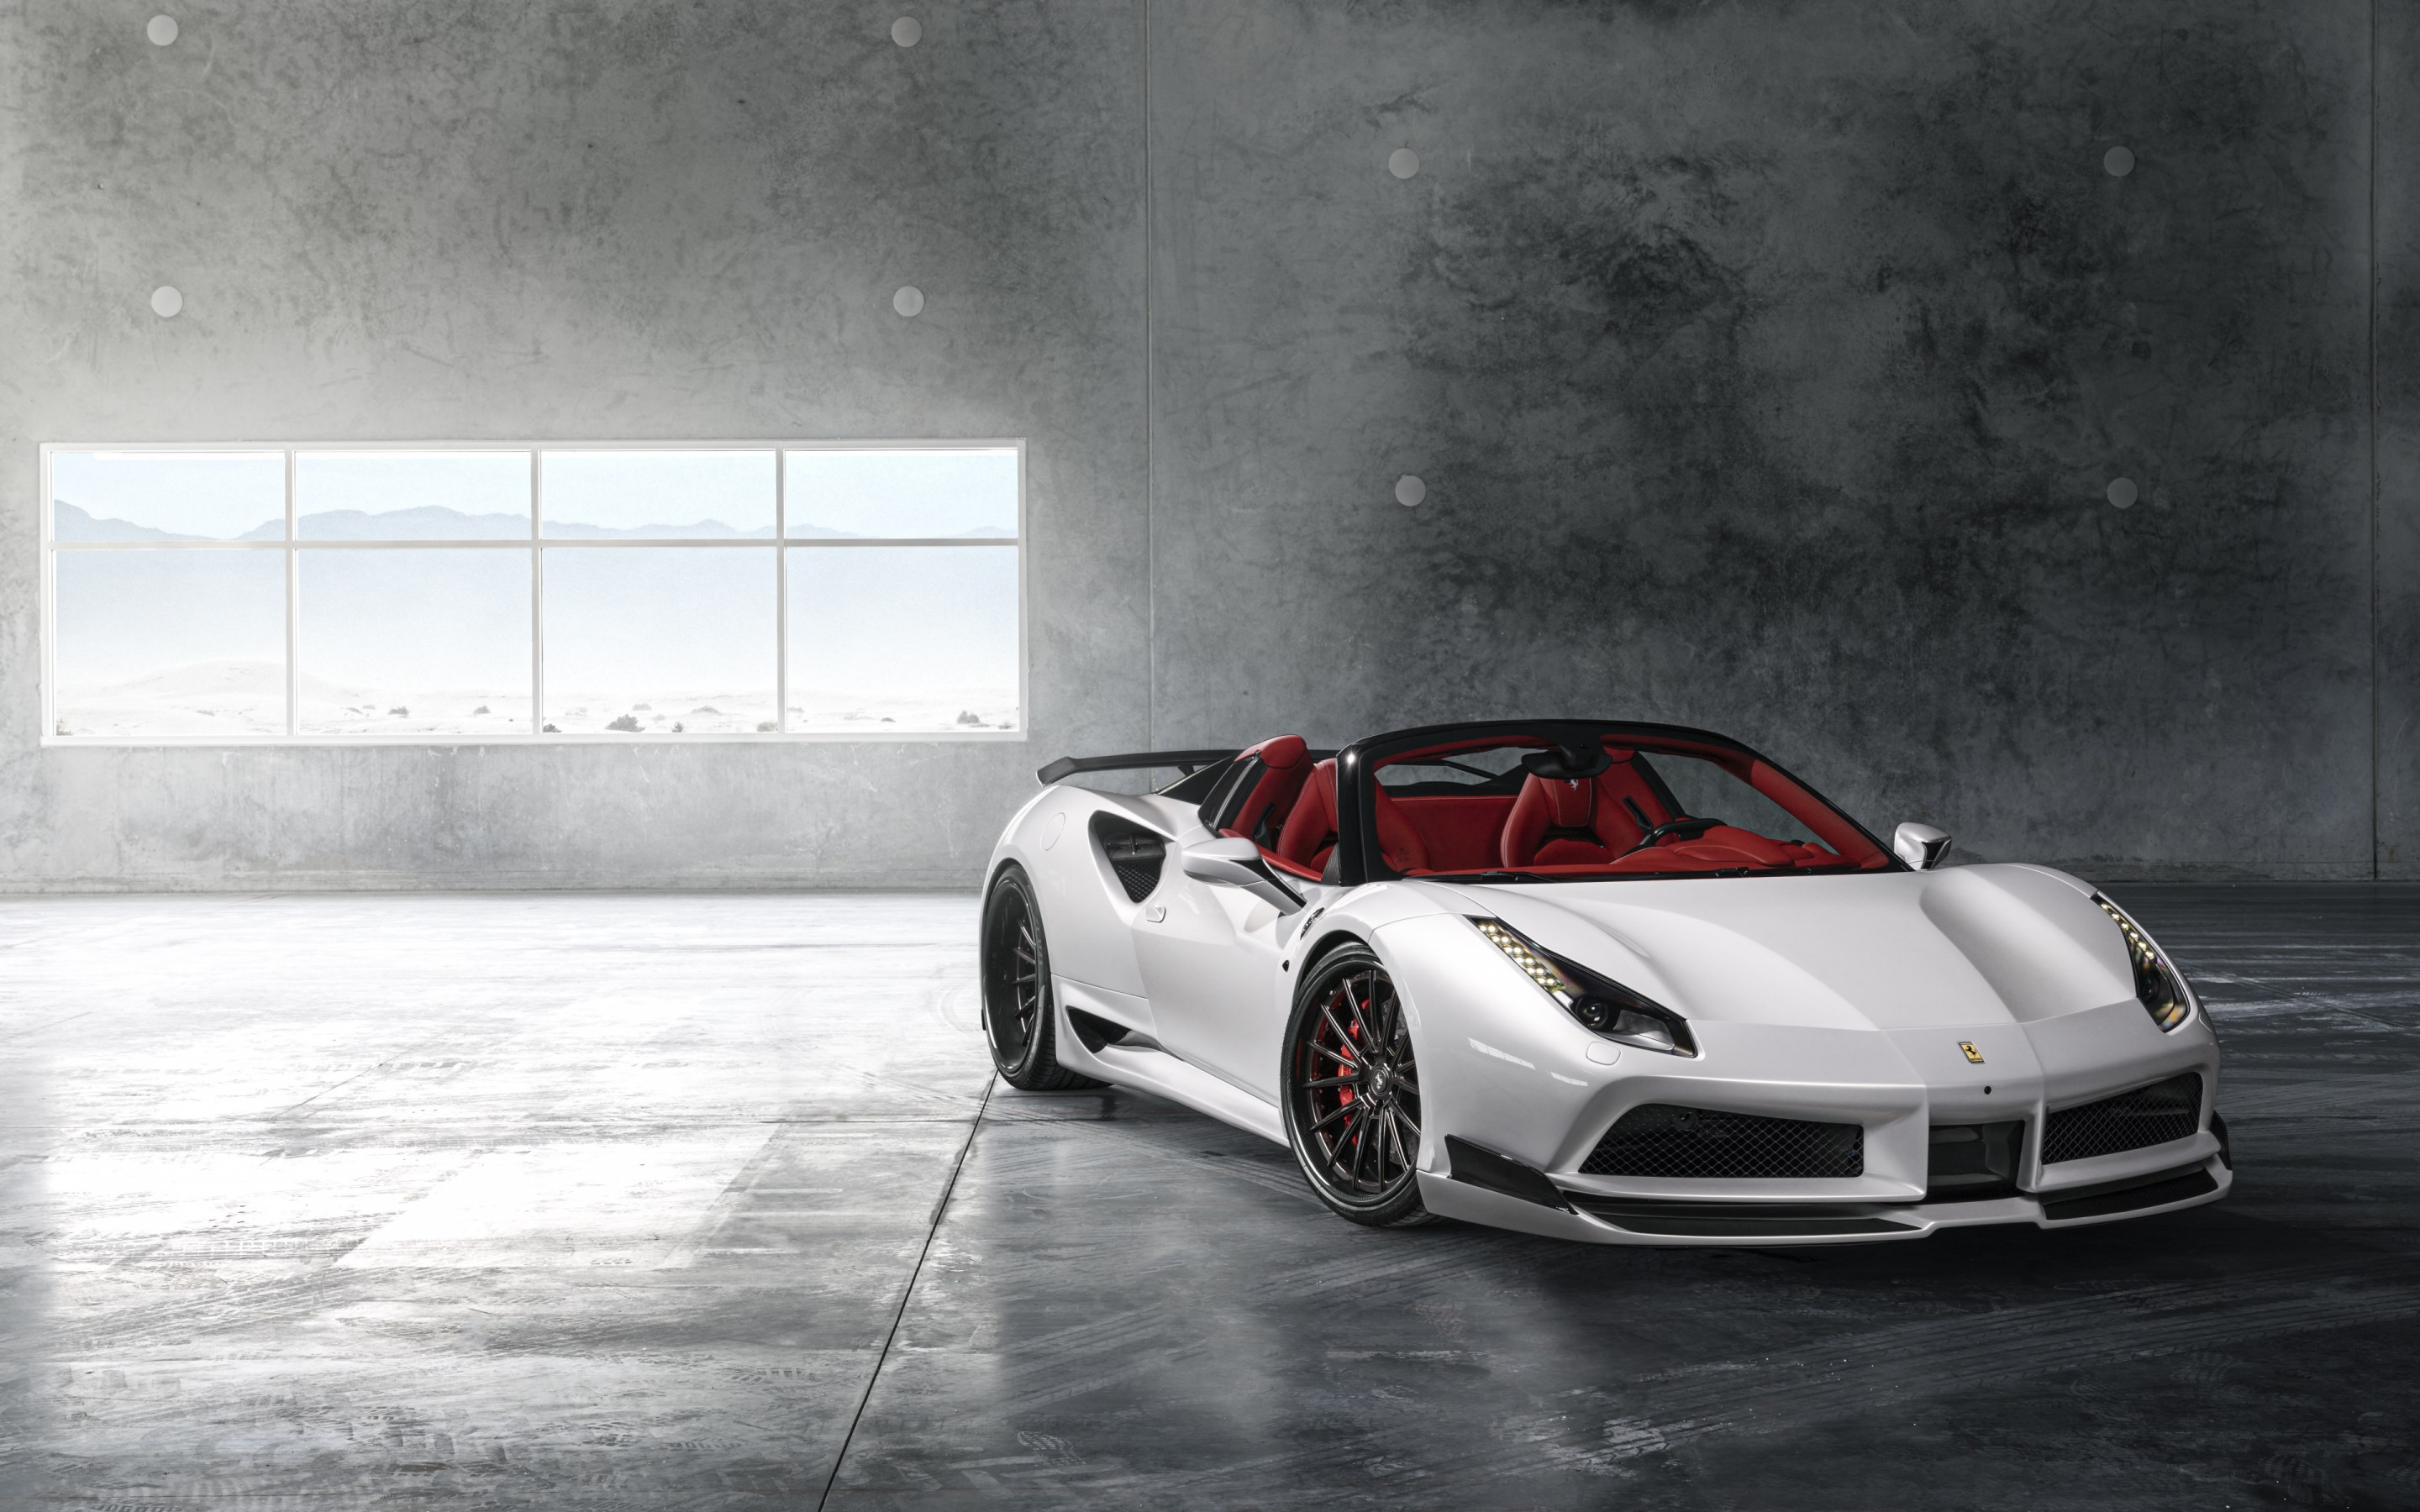 Convertible Ferrari 488 wallpaper 2880x1800